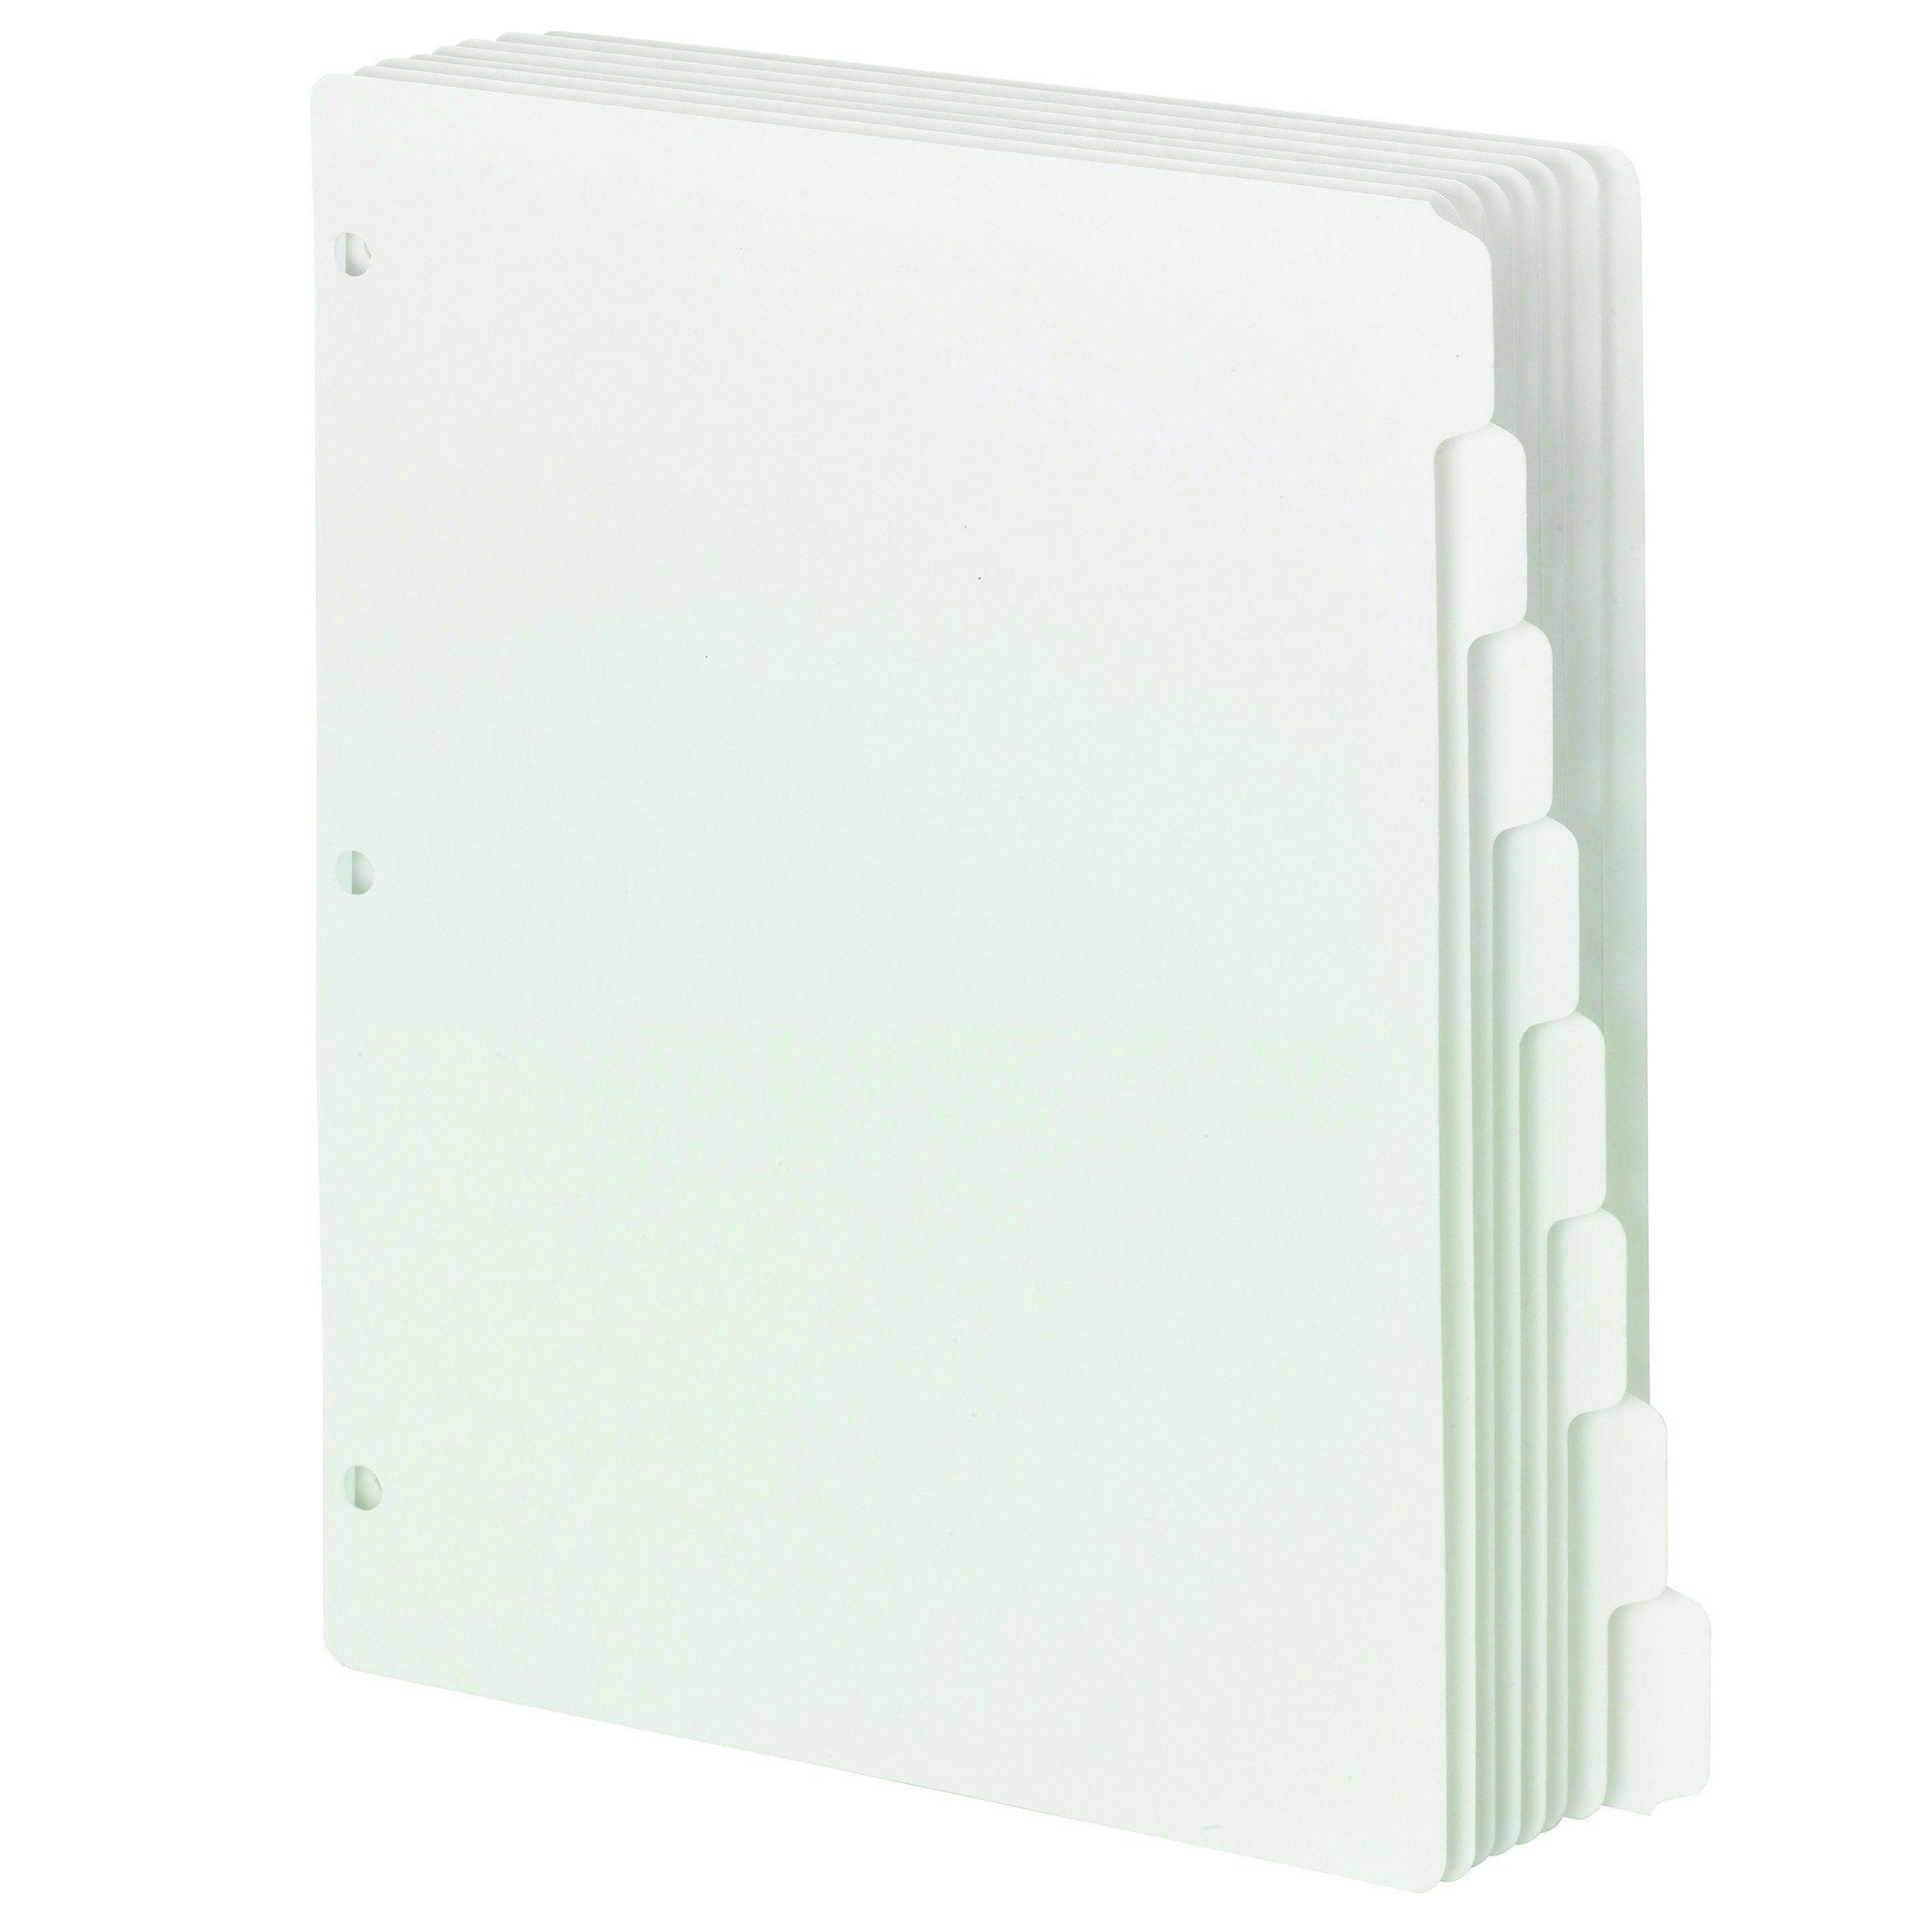 Smead Three-Ring Binder Index Dividers, 1/8-Cut Tab, Letter Size, White, 96 per Box (89418)